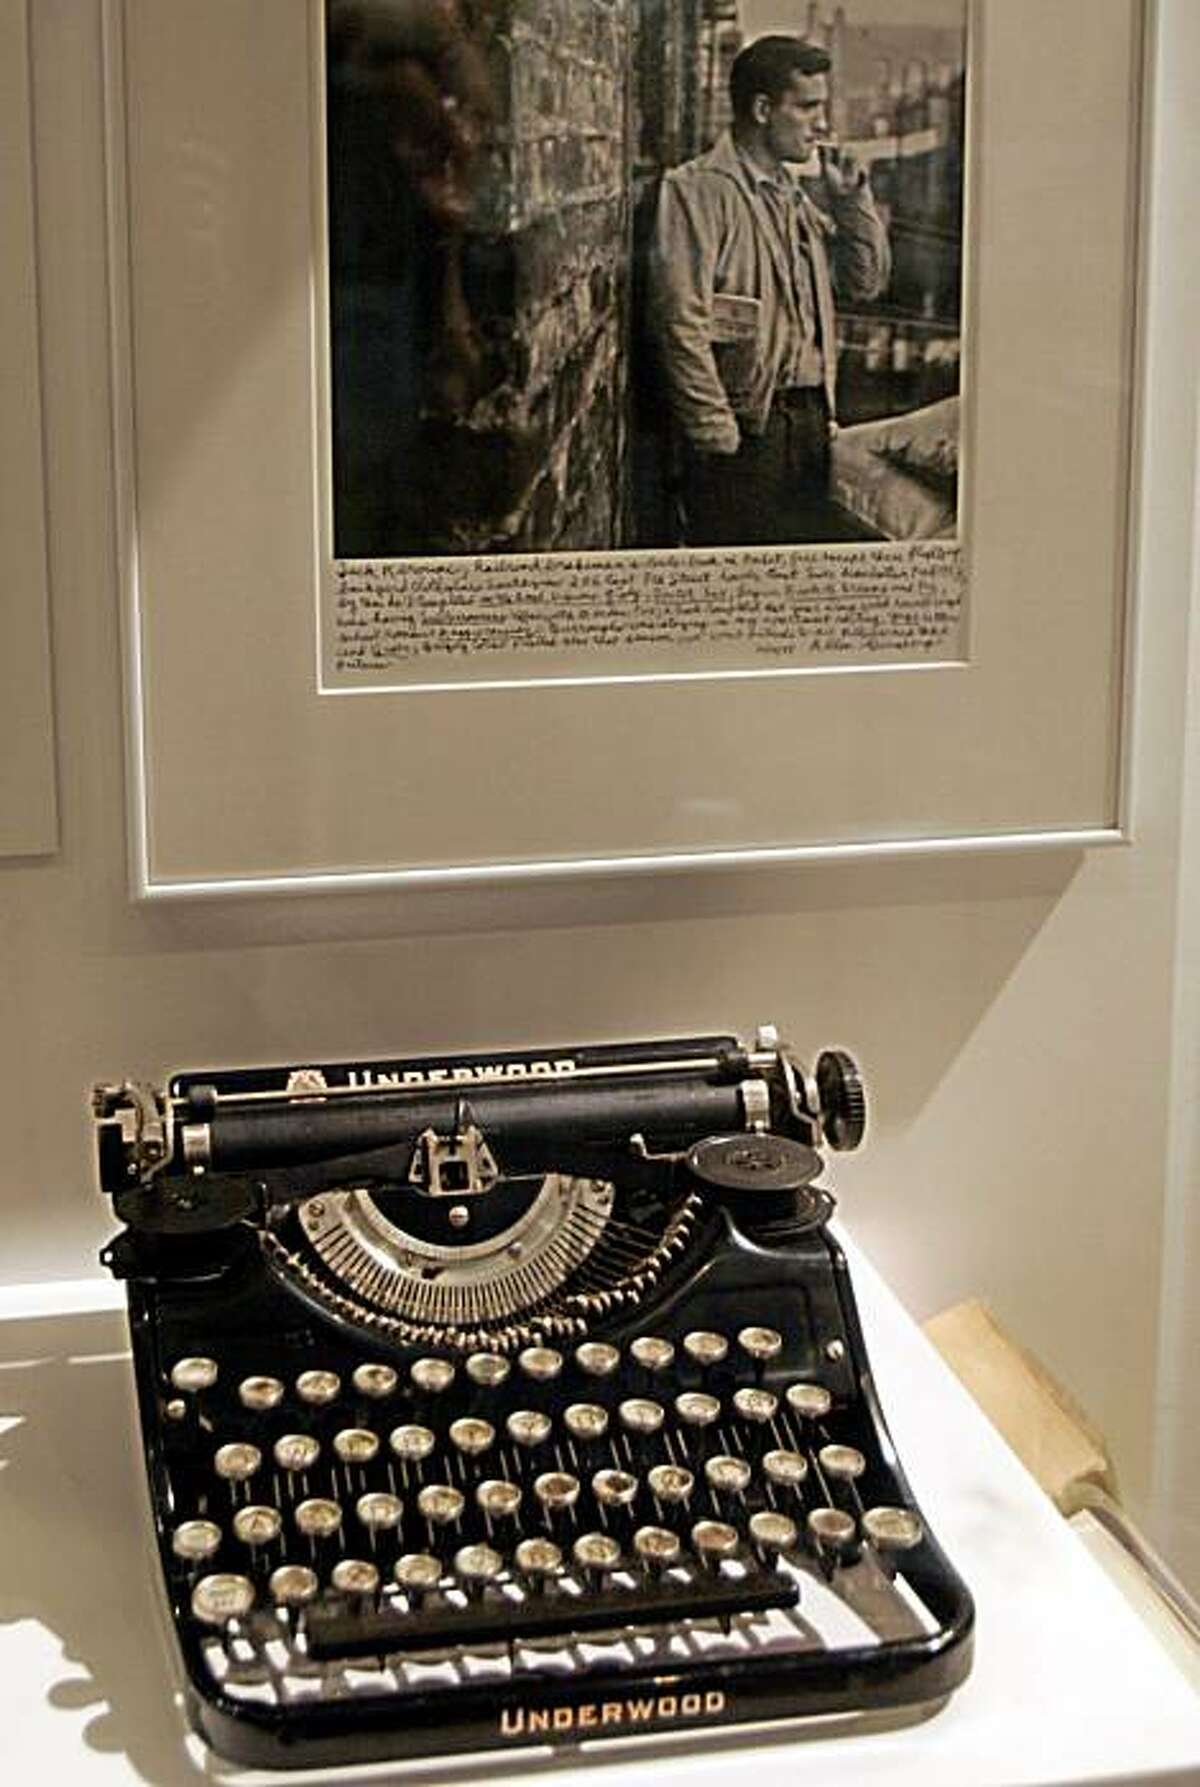 A display of writer Jack Kerouac artifacts including a typewriter are seen in Working People Exhibit at Morgan Cultural Center, in the Lowell National Historic Park in Lowell, Mass., Monday, May 1, 2006. The story of Kerouac, whose parents emigrated from French Canada before his birth in Lowell in 1922, is inseparable from the mills and the stream of immigrants coming to the banks of the Merrimack River since the early 1800s.